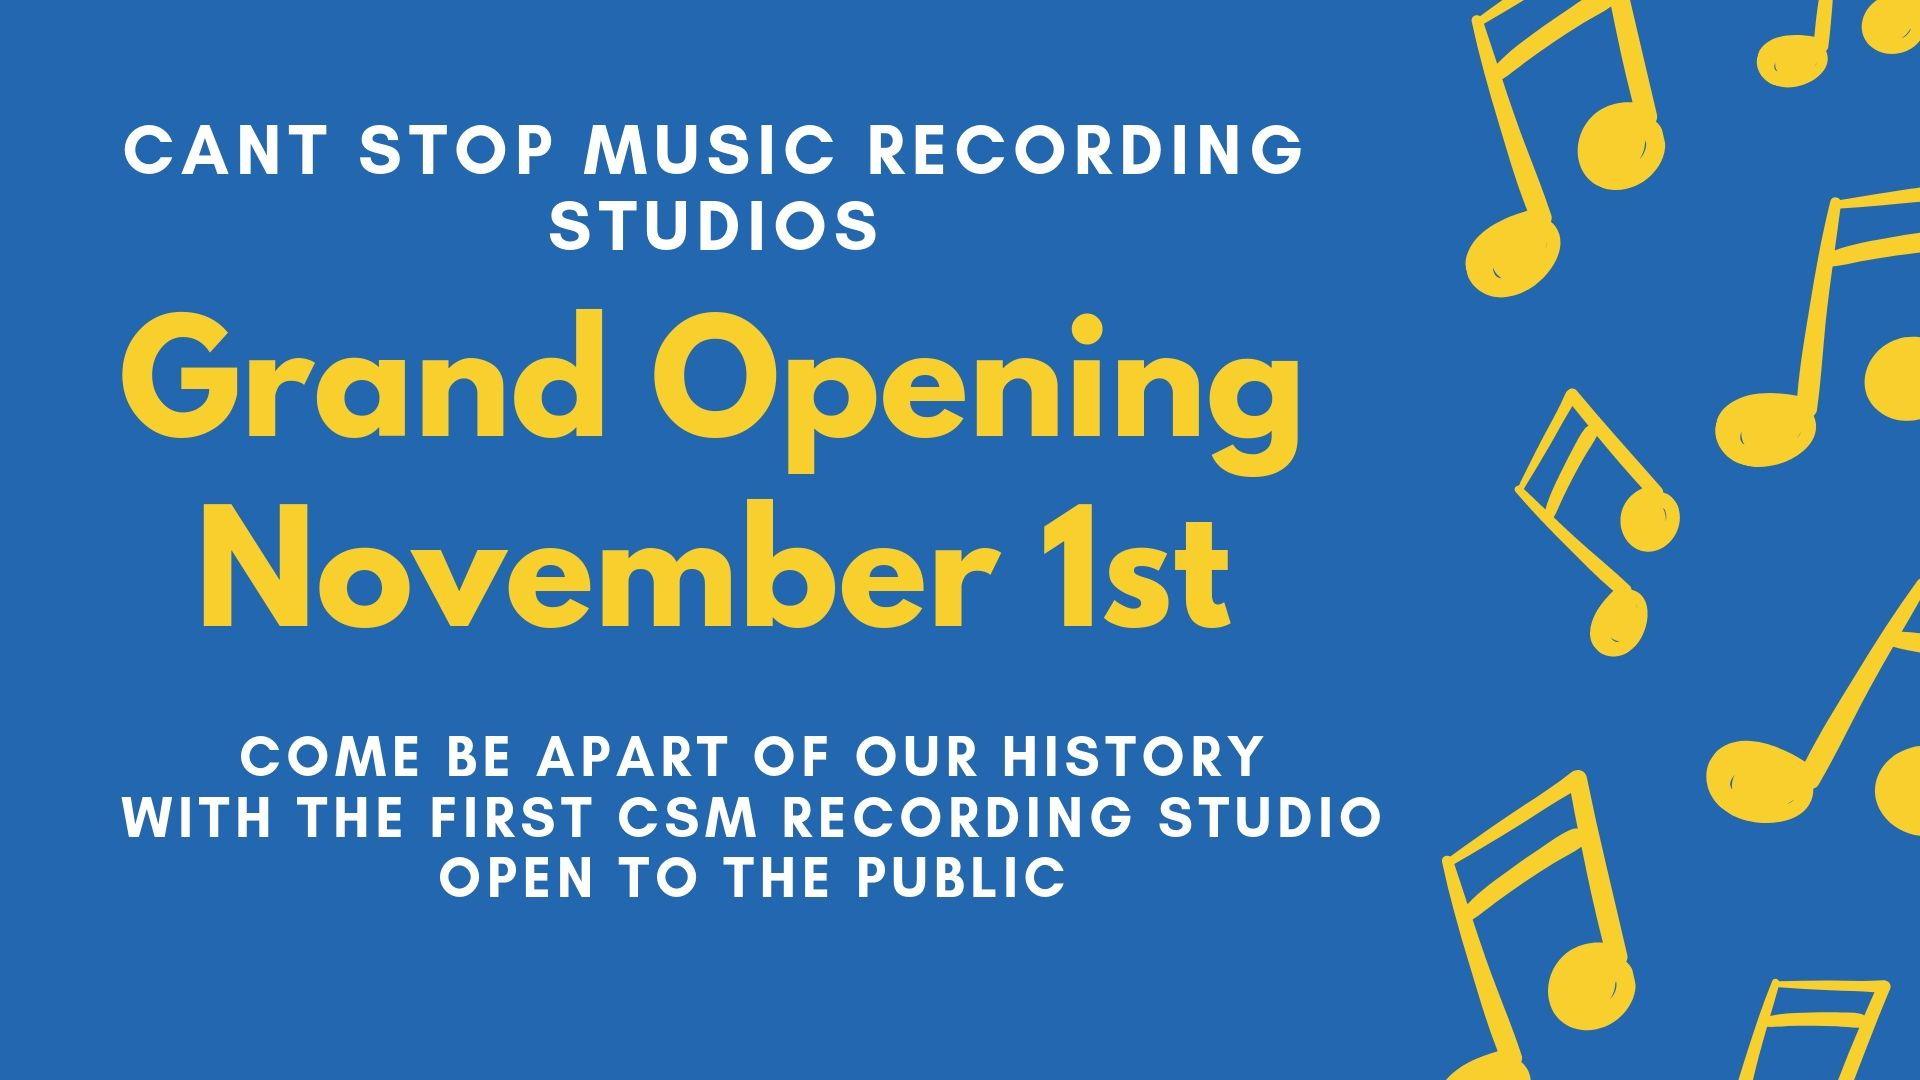 Cant Stop Music Recording Studios